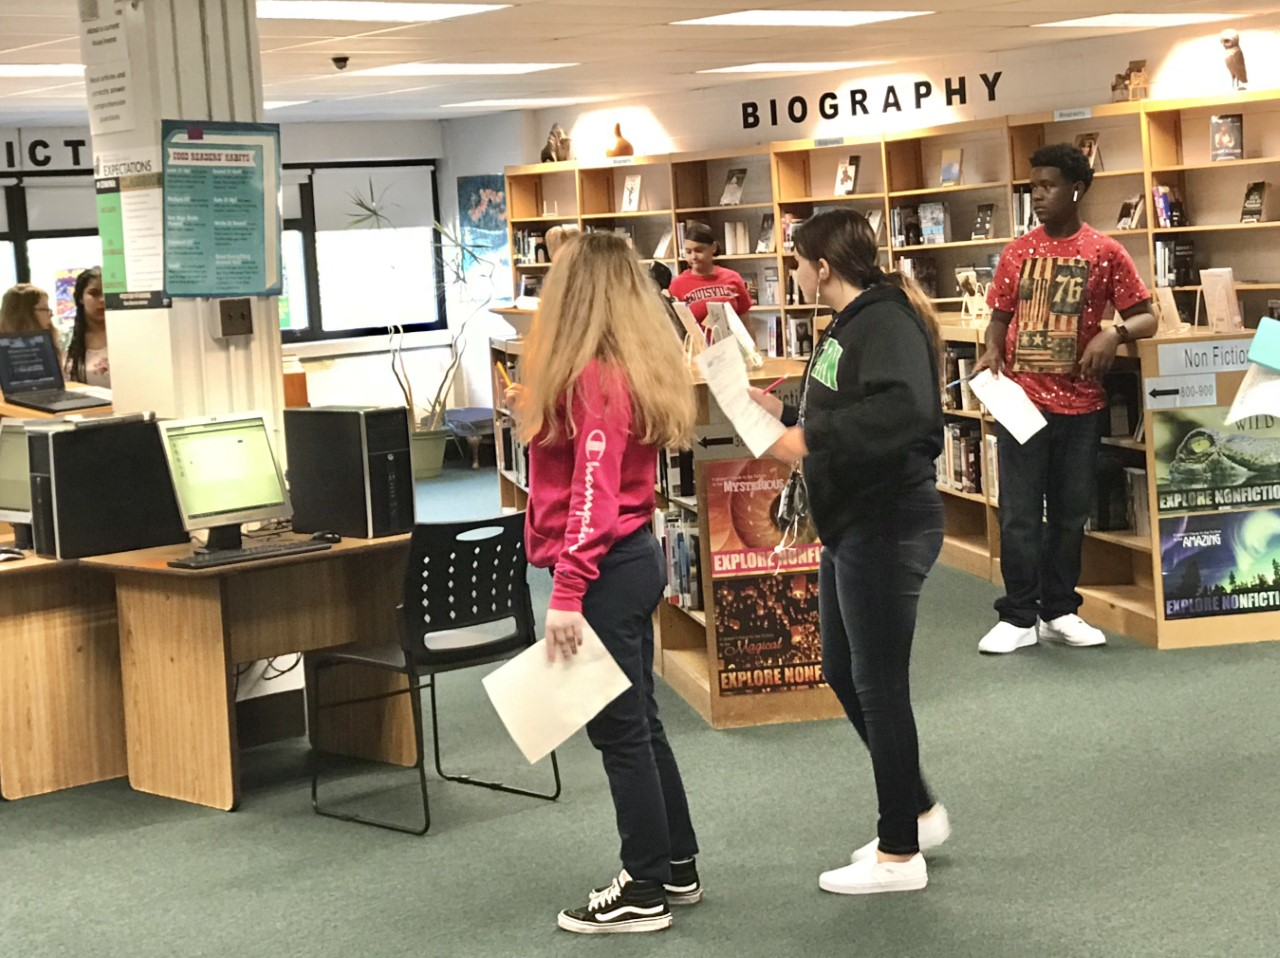 Library Scavenger Hunt to Learn the Library and Find a Good Read